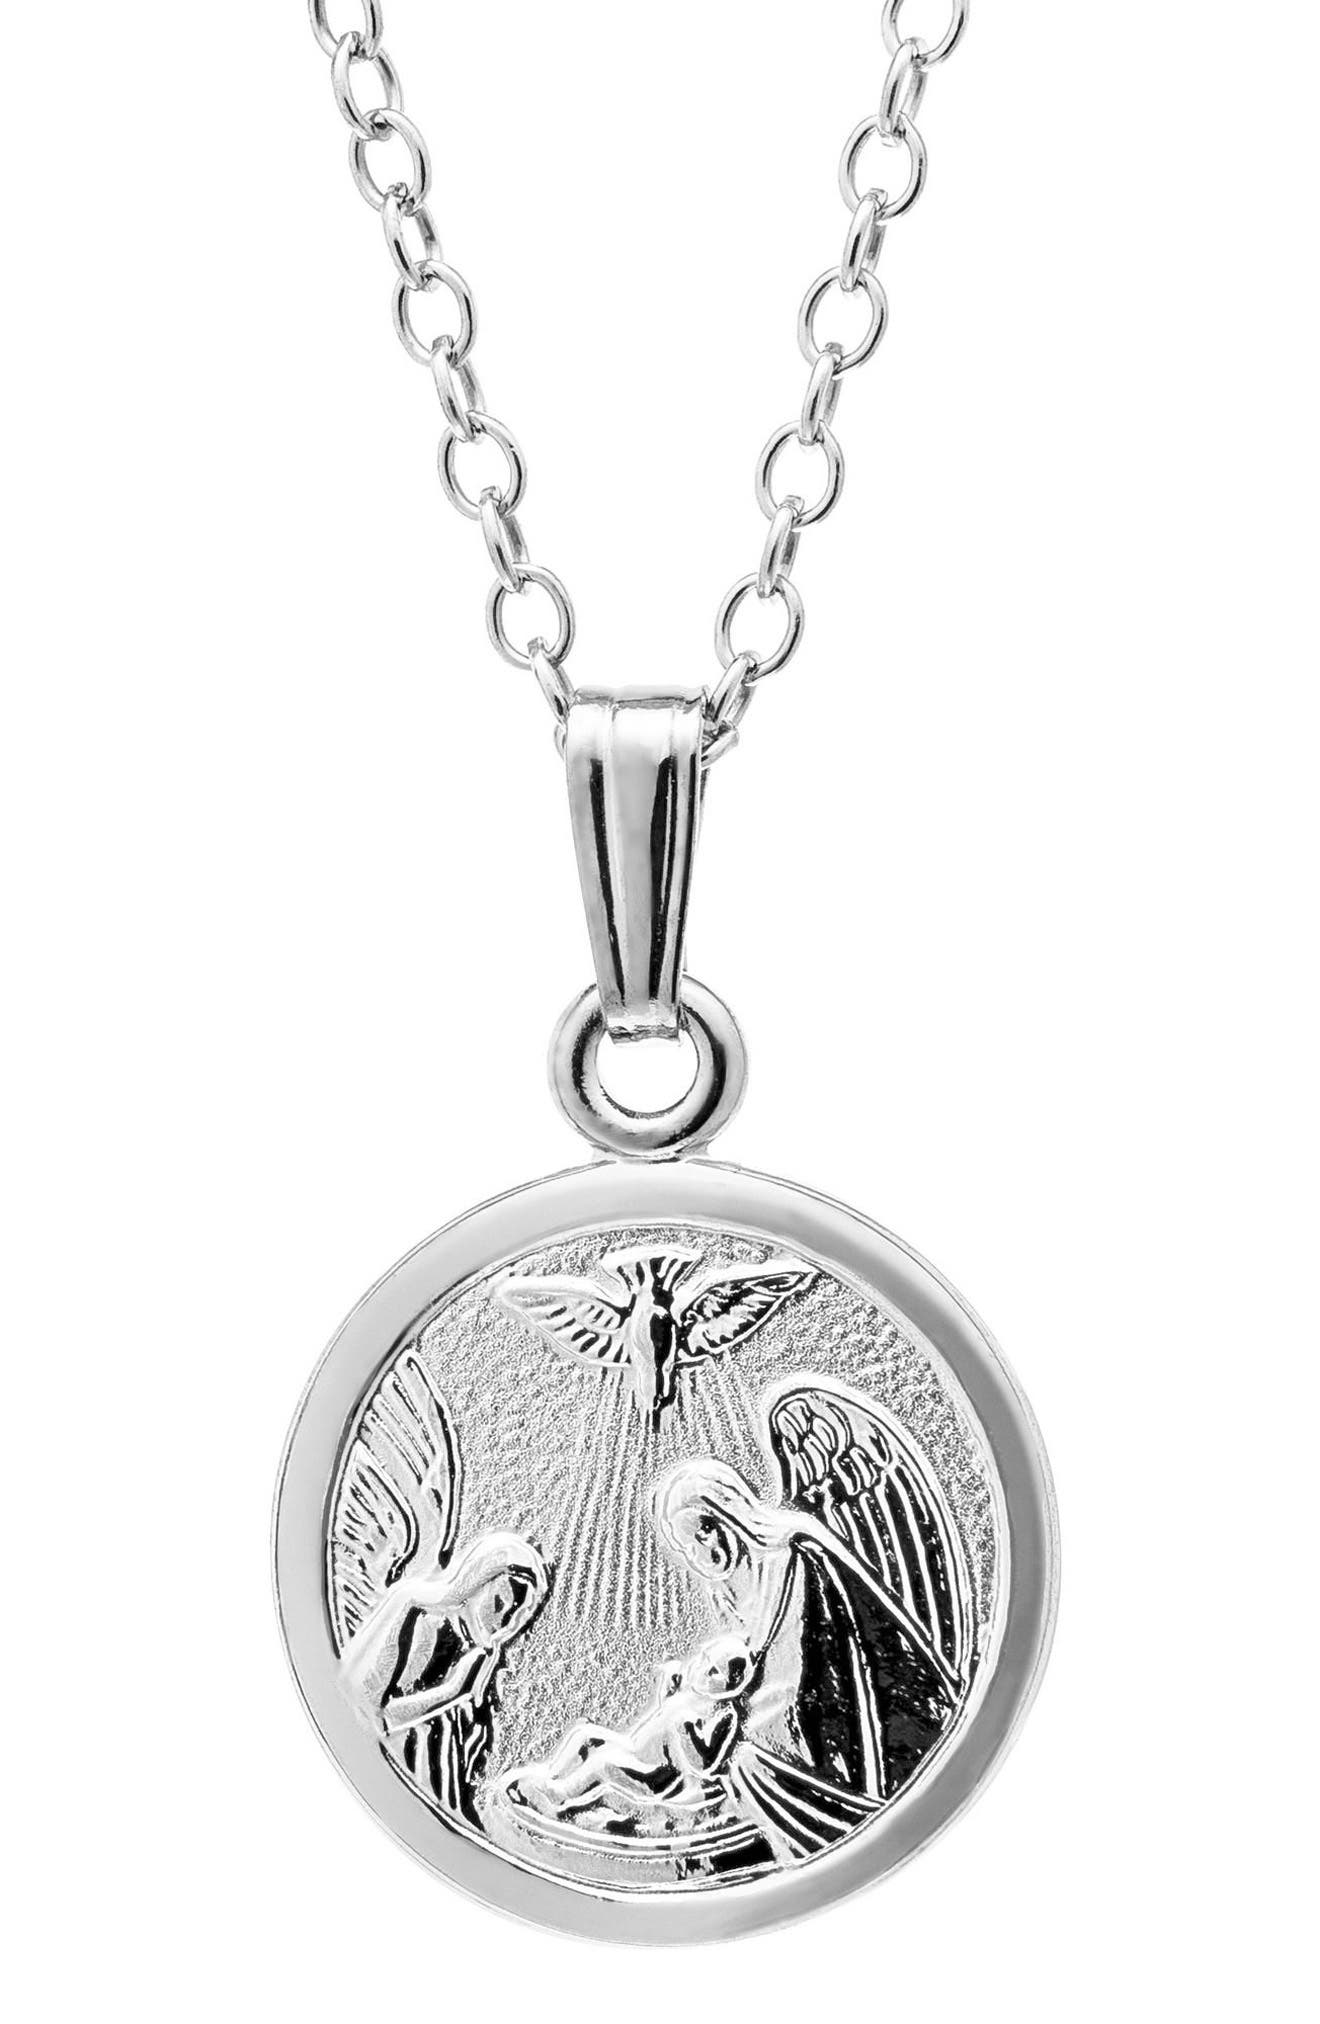 Sterling Silver Guardian Angel Pendant Necklace,                             Main thumbnail 1, color,                             SILVER